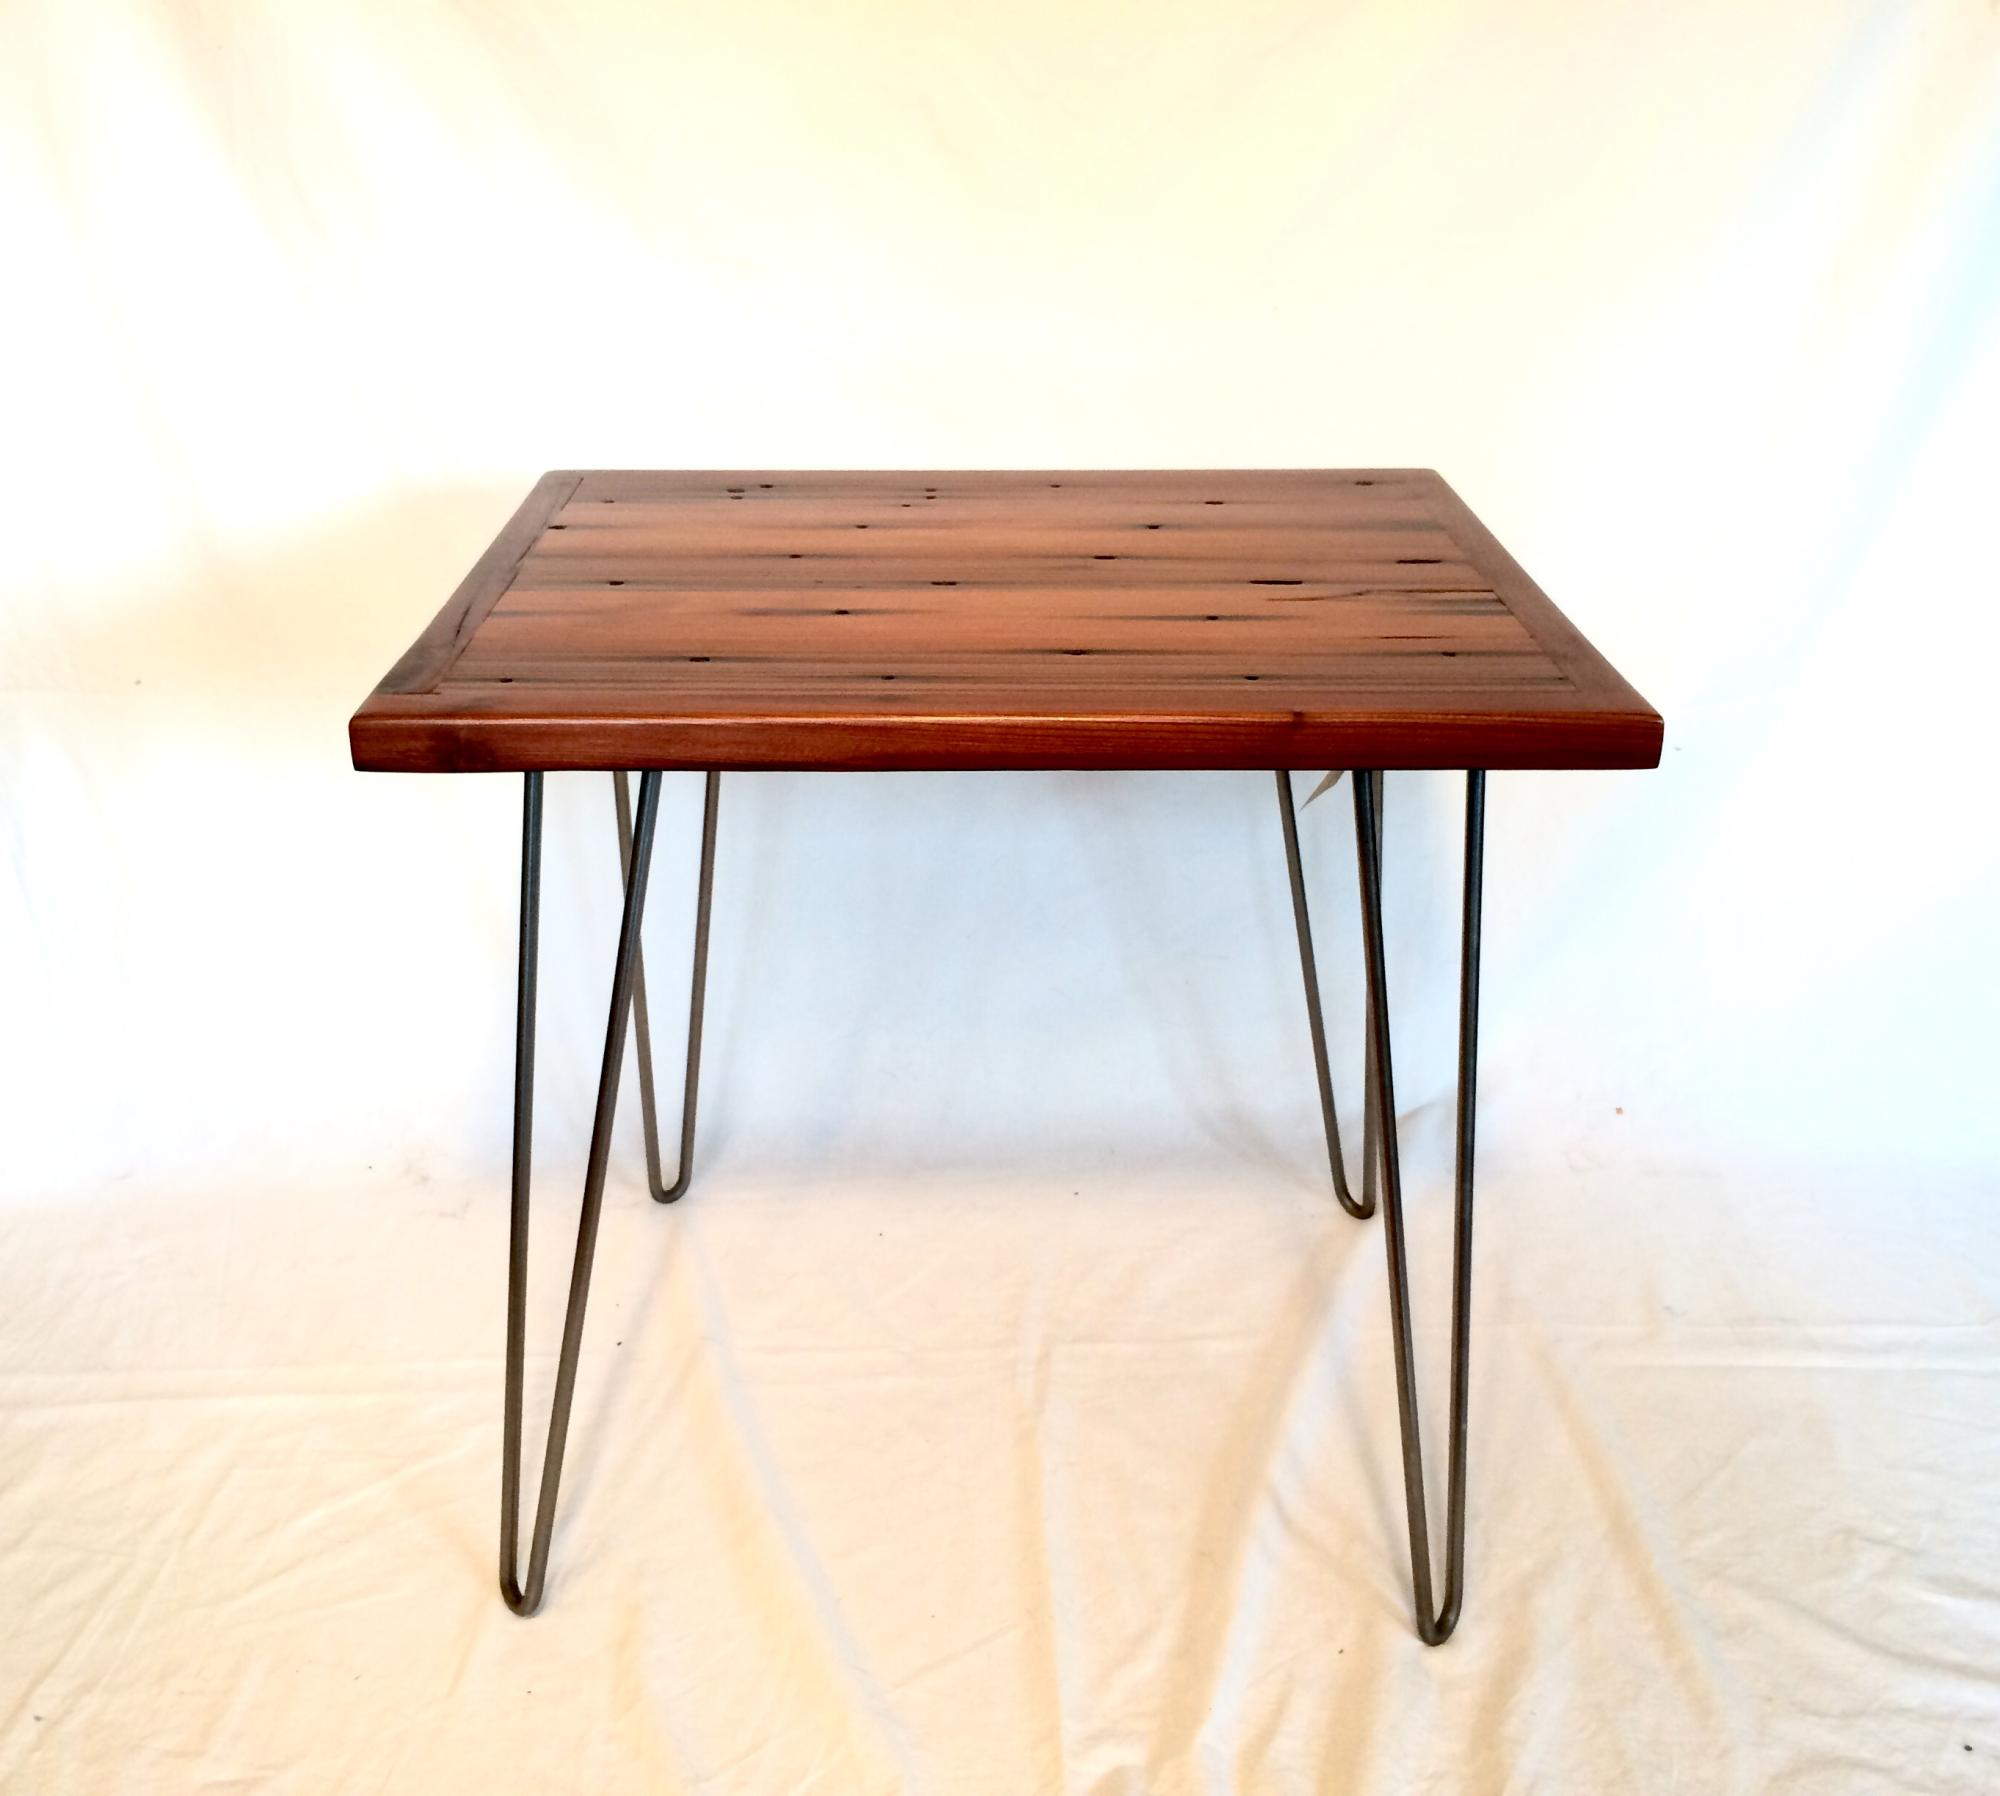 Redwood drift lumber accent or end table w/steel hairpin legs.  22.5Lx18.5Wx21H  $250